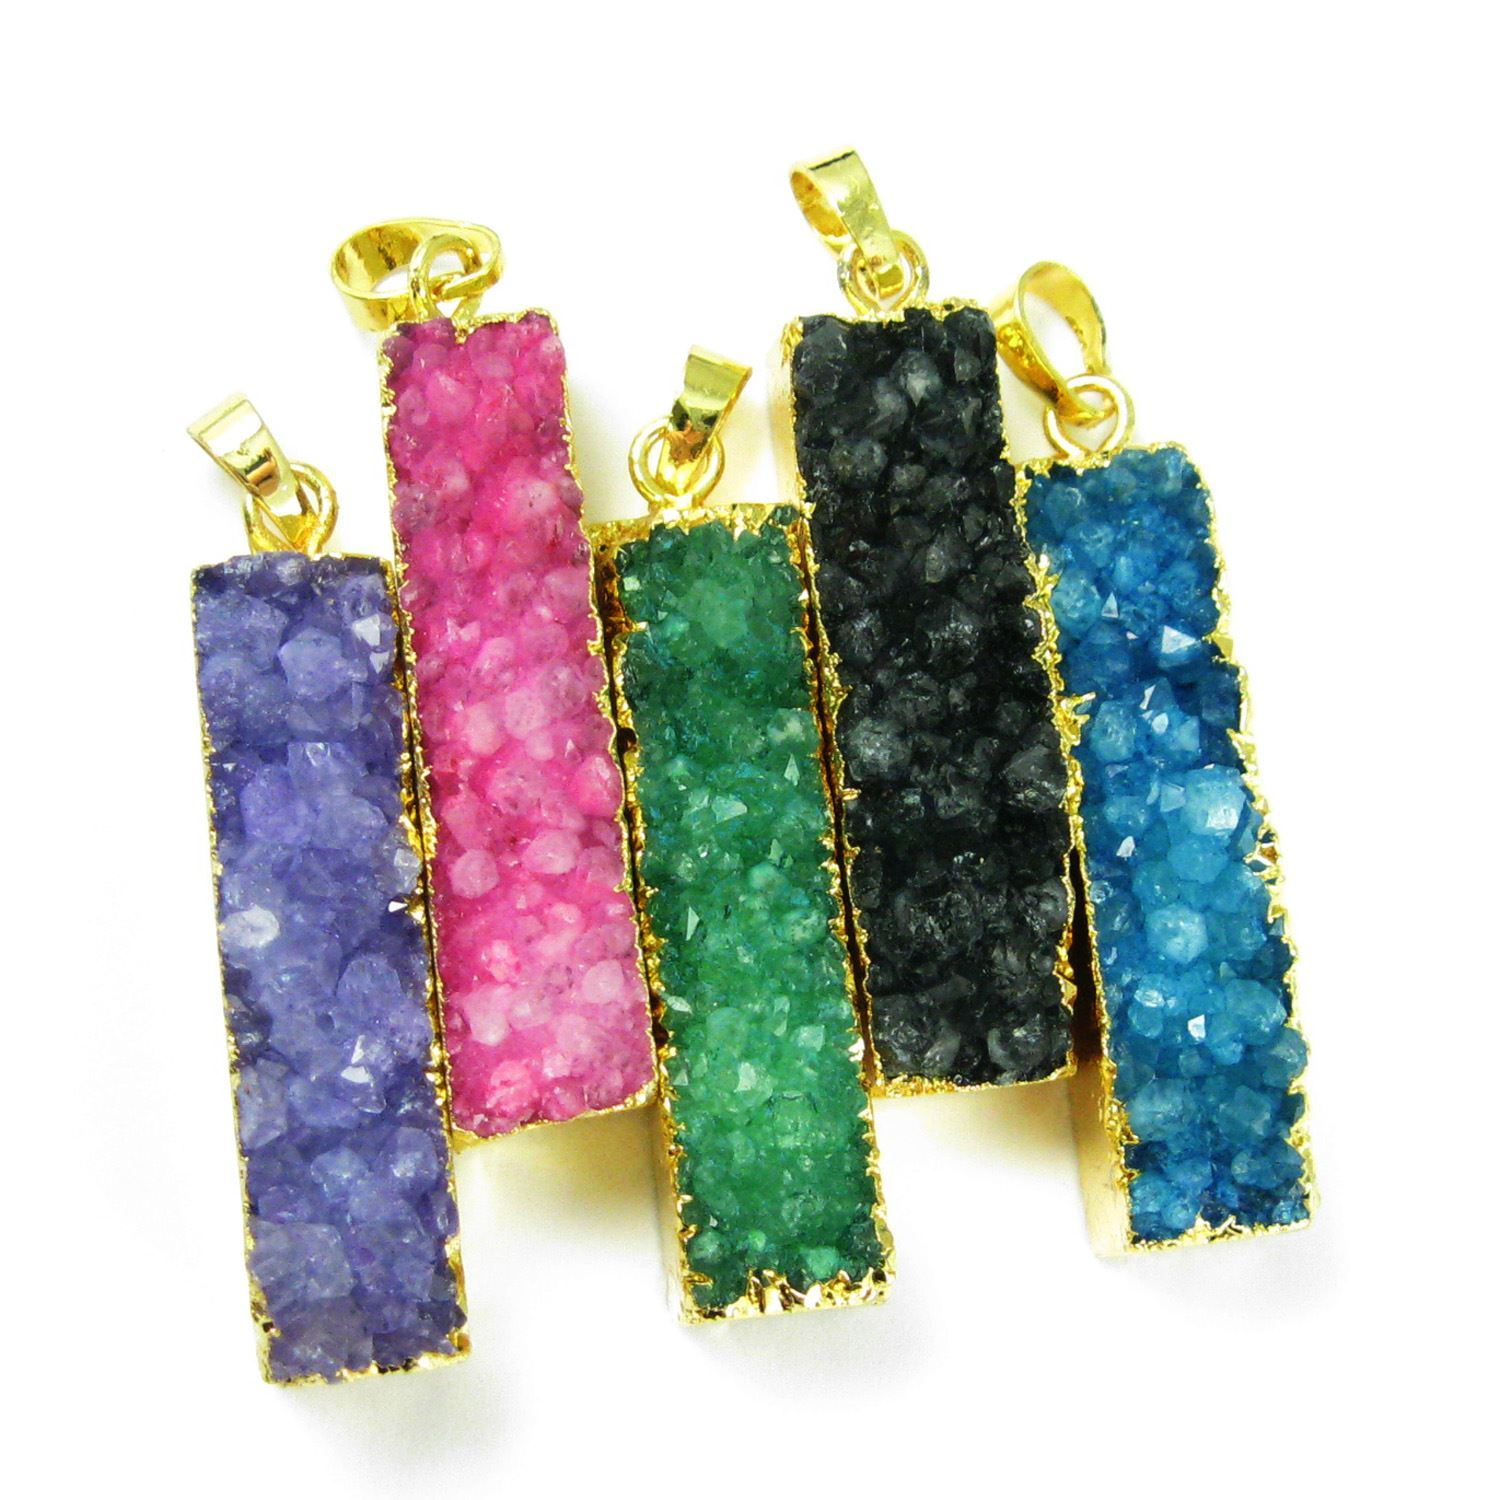 Druzy Bar Pendant, Rainbow Druzy Agate Bar Pendant- Vertical- Gold plated Brass Edge and Bail - 52mm - Blue Druzy